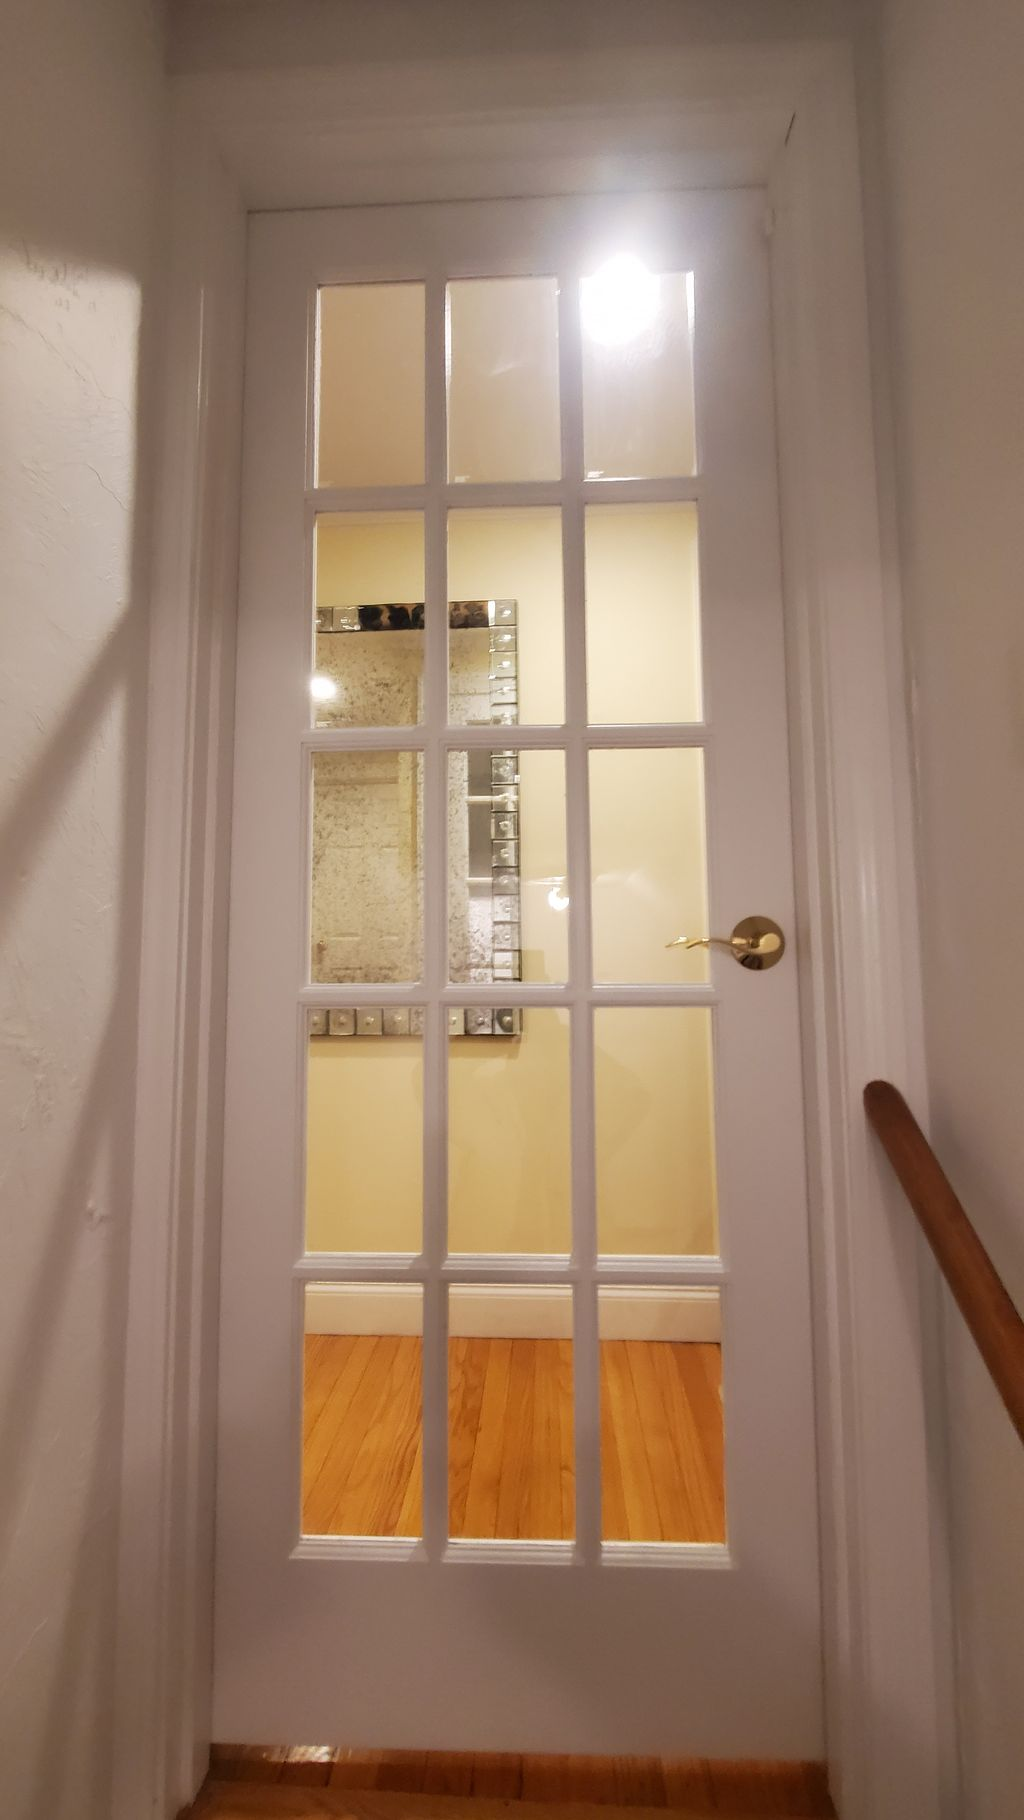 New door painting and installation